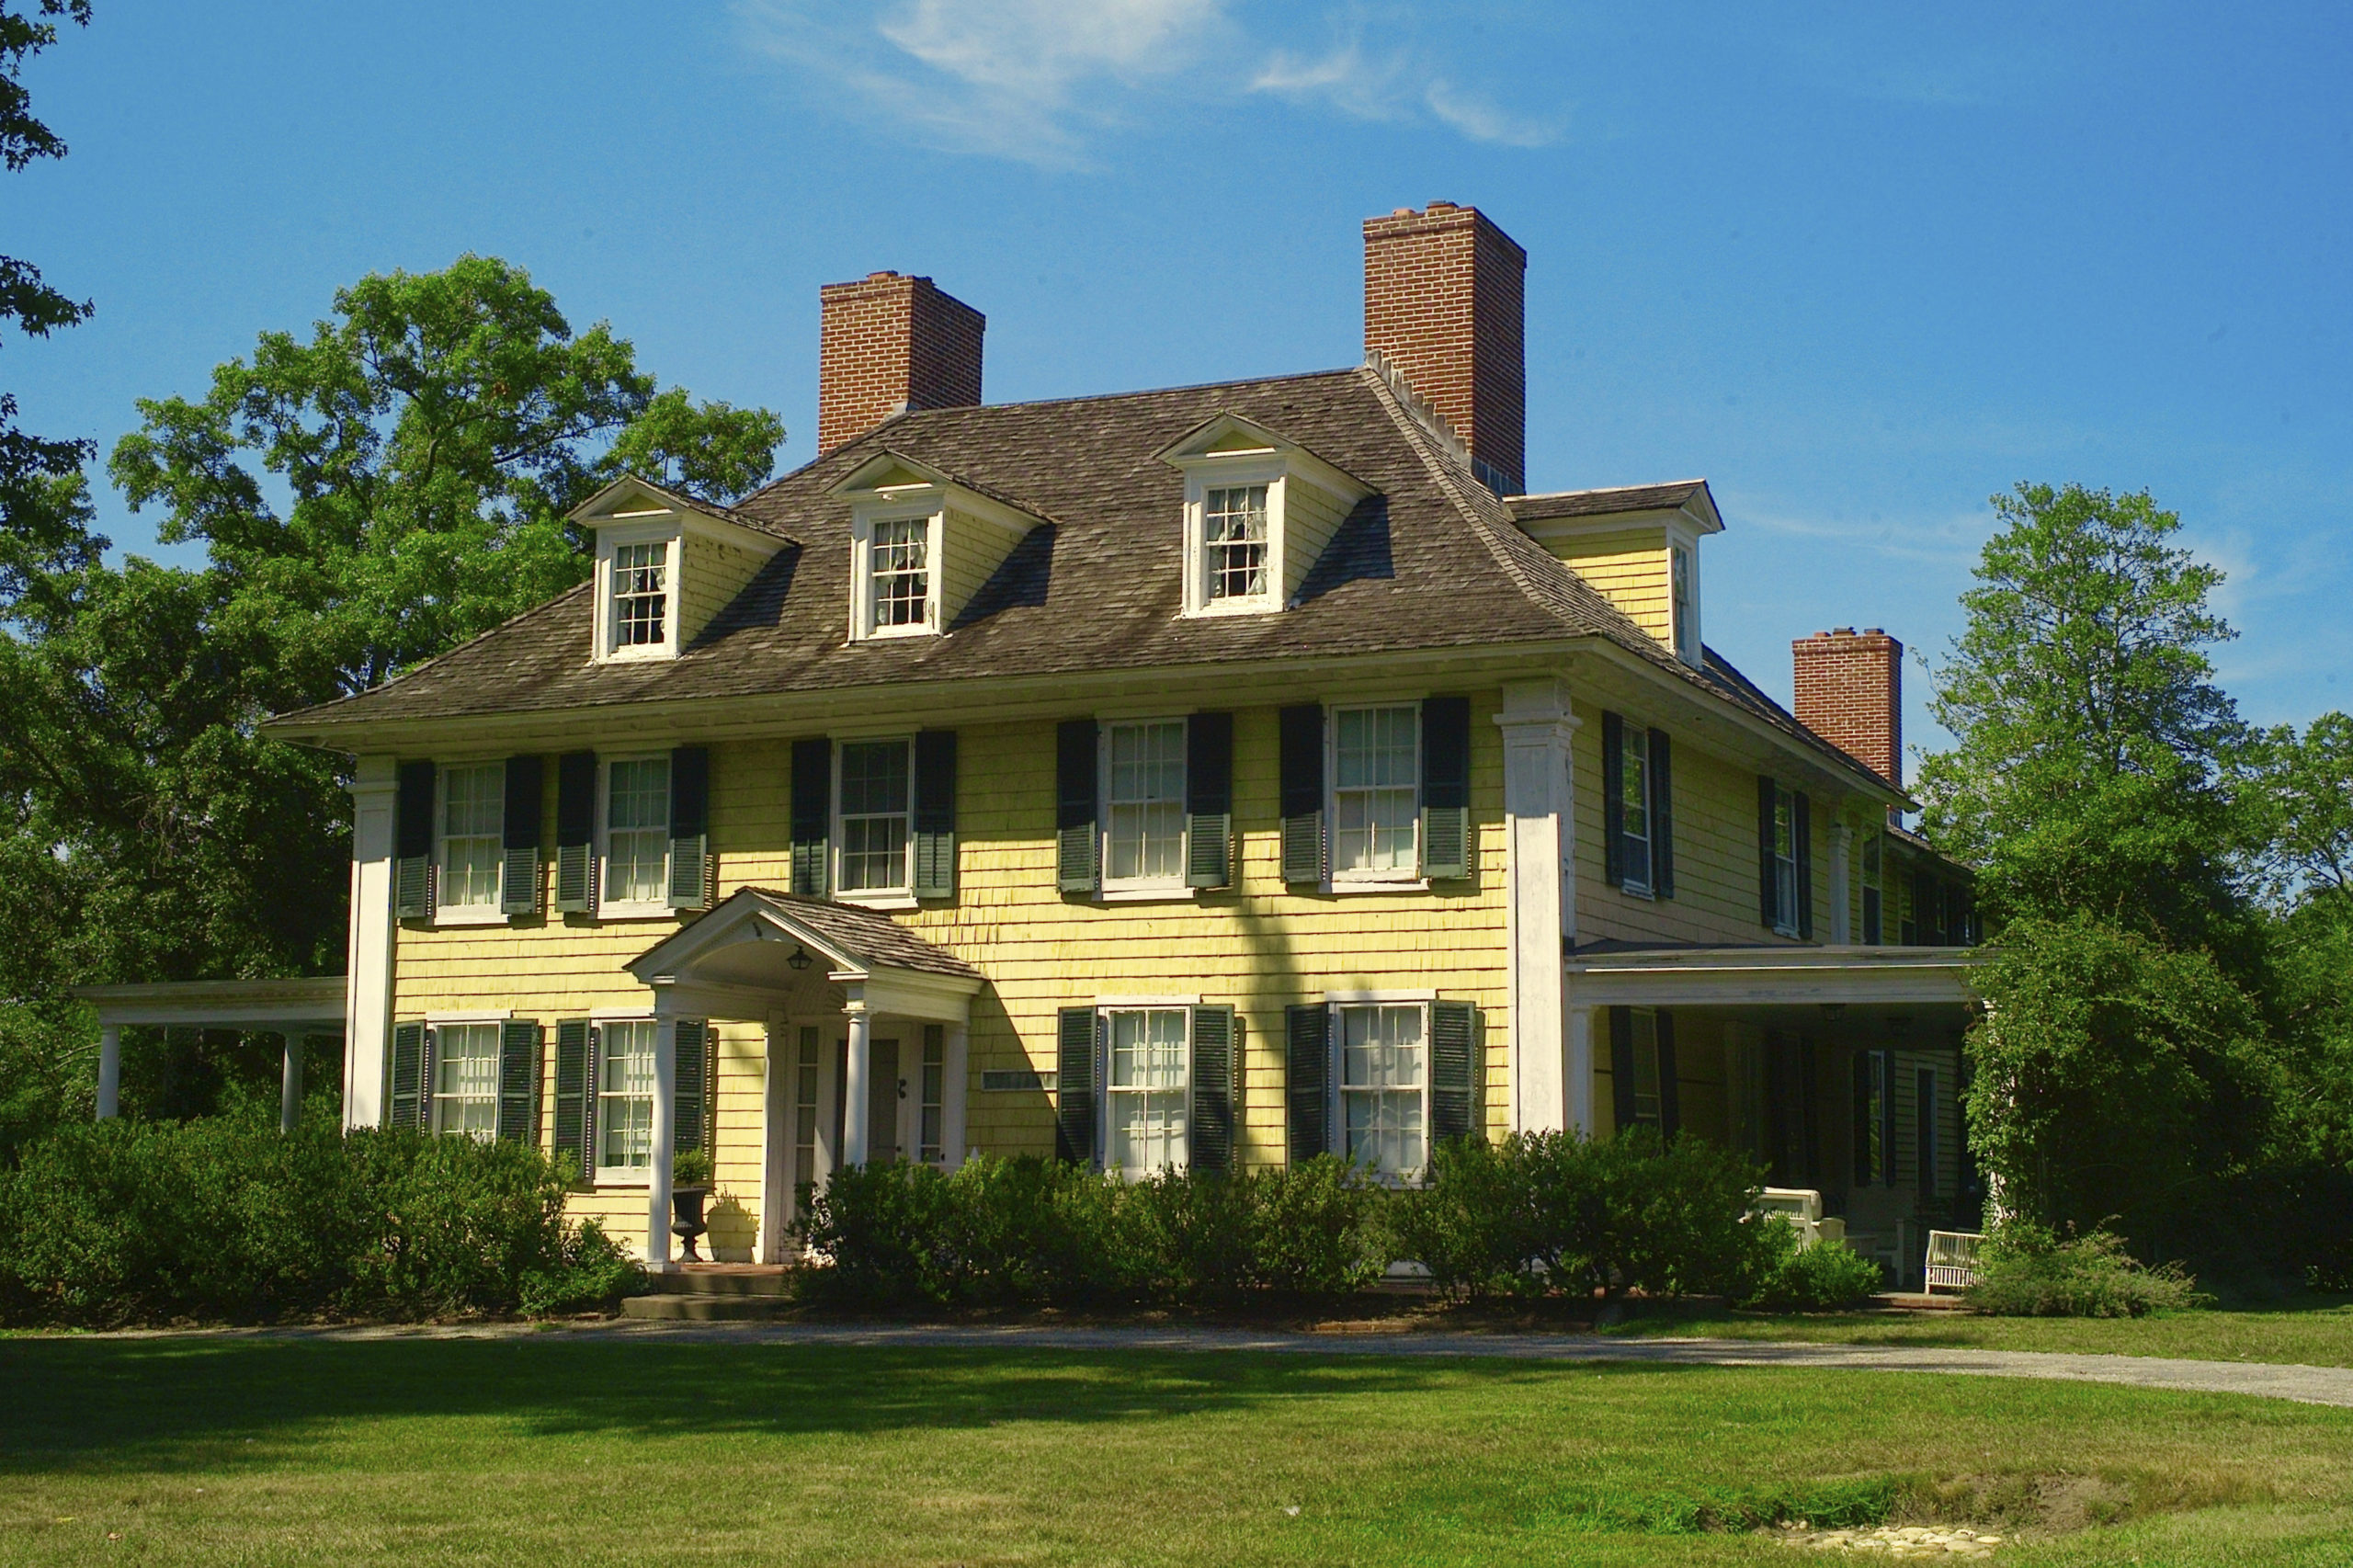 The Sylvester Manor house built 1737.